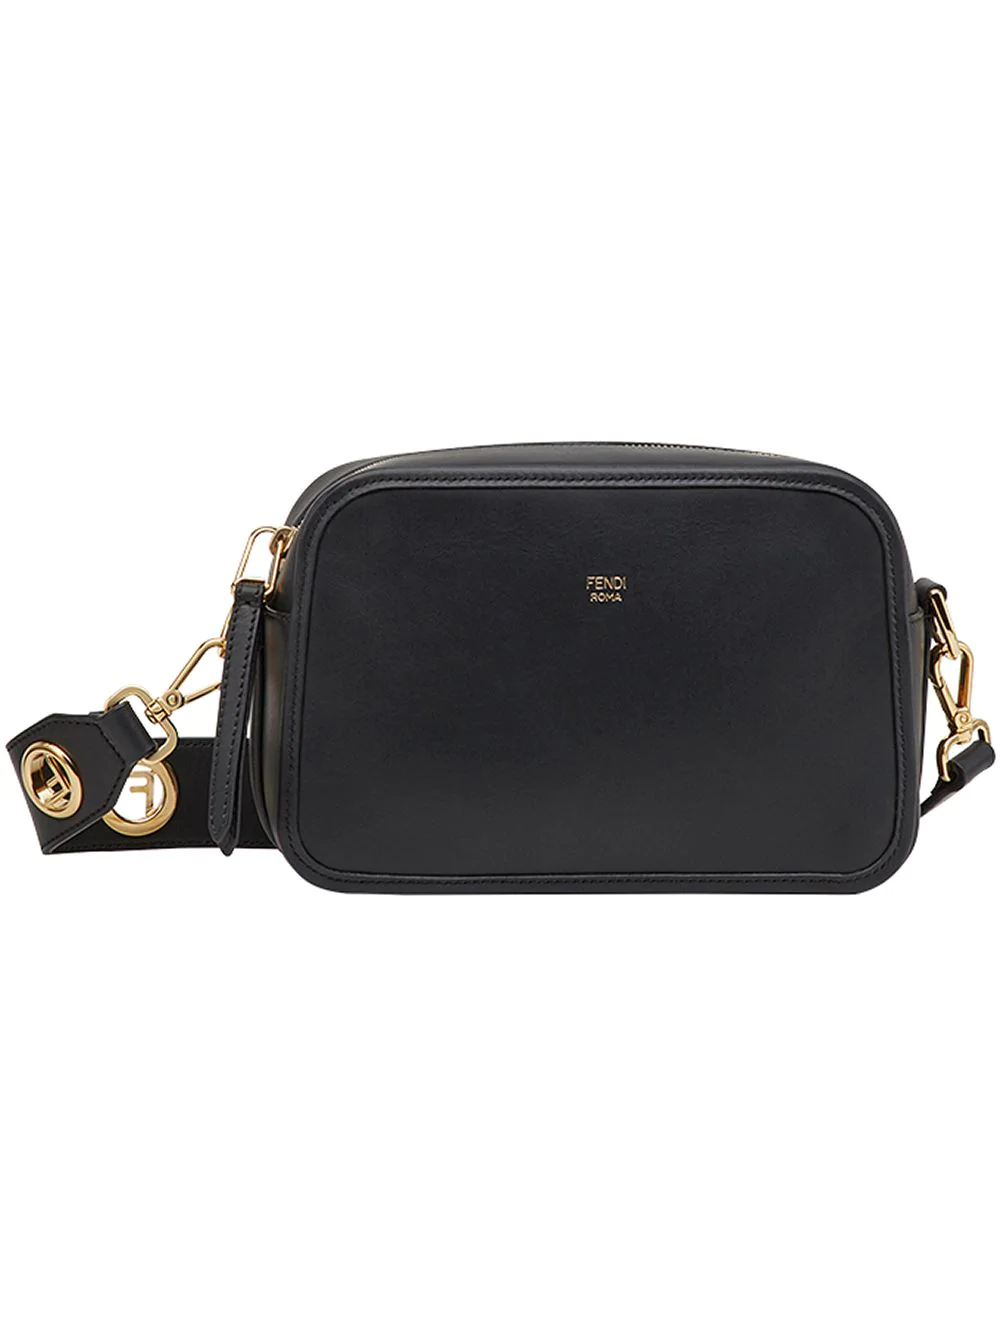 0e480f5ad4 Fendi Camera Case Shoulder Bag - Black